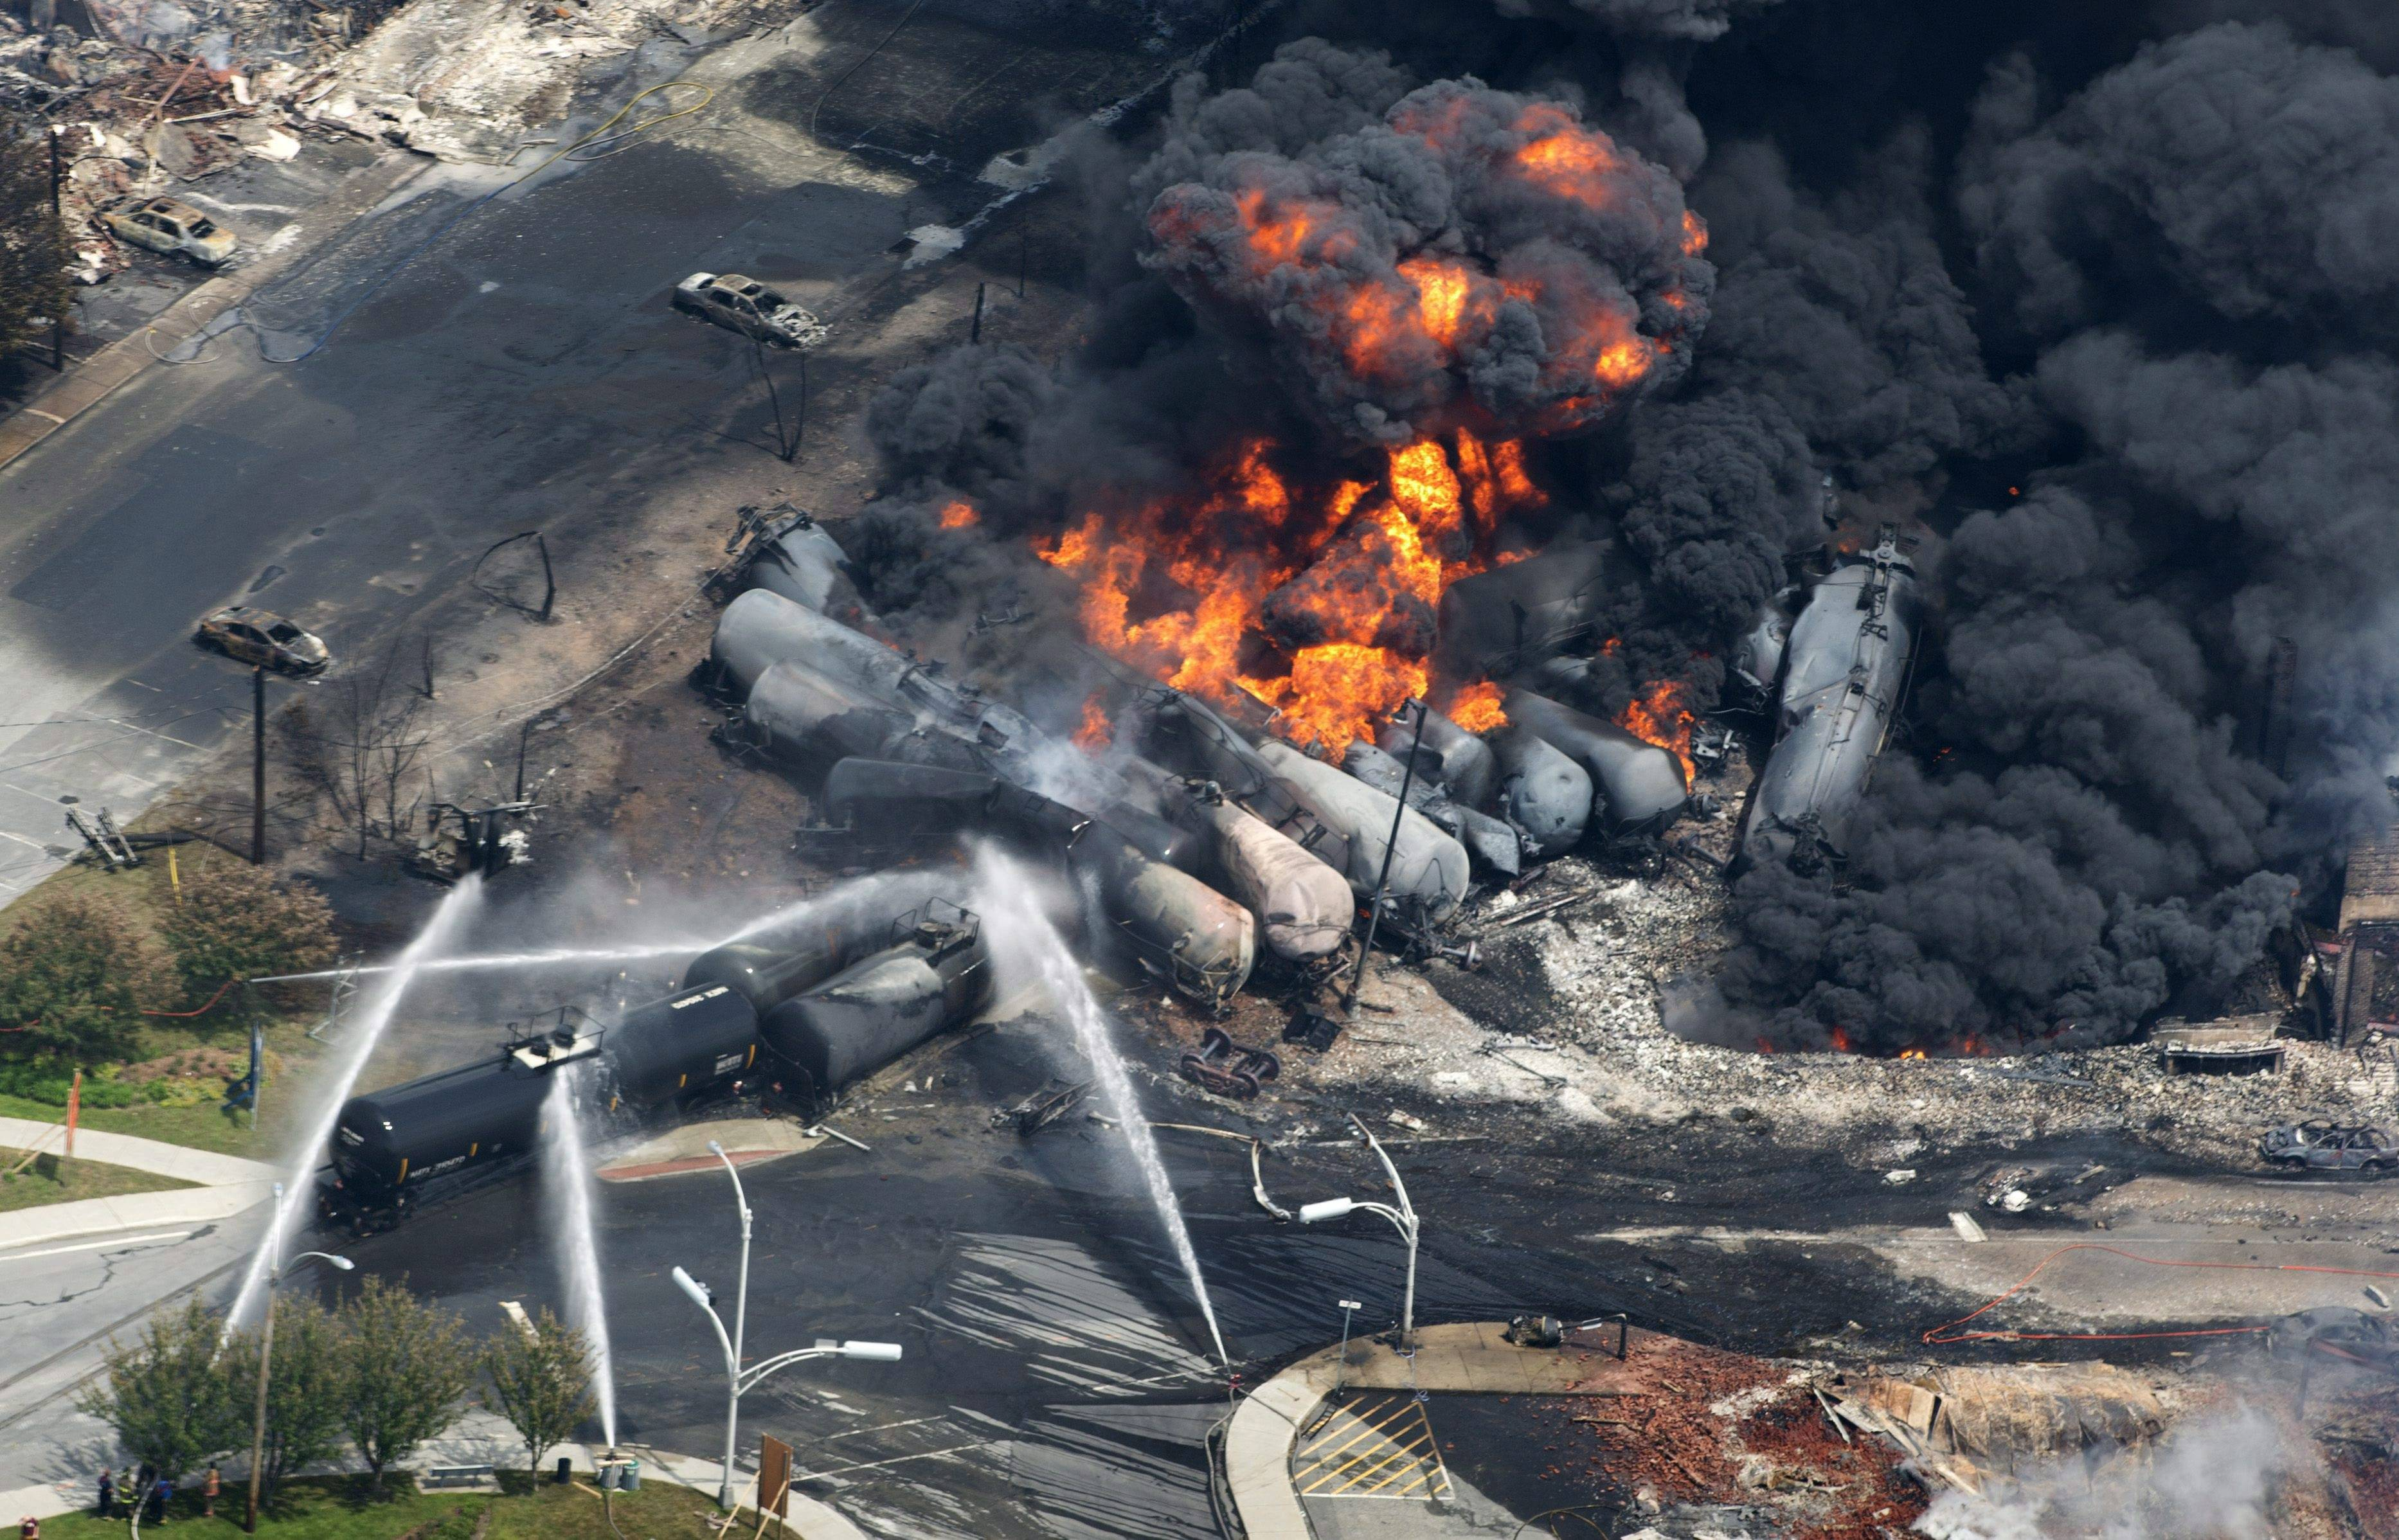 Firefighters douse railway cars carrying crude oil after derailing in downtown Lac Megantic, Quebec.